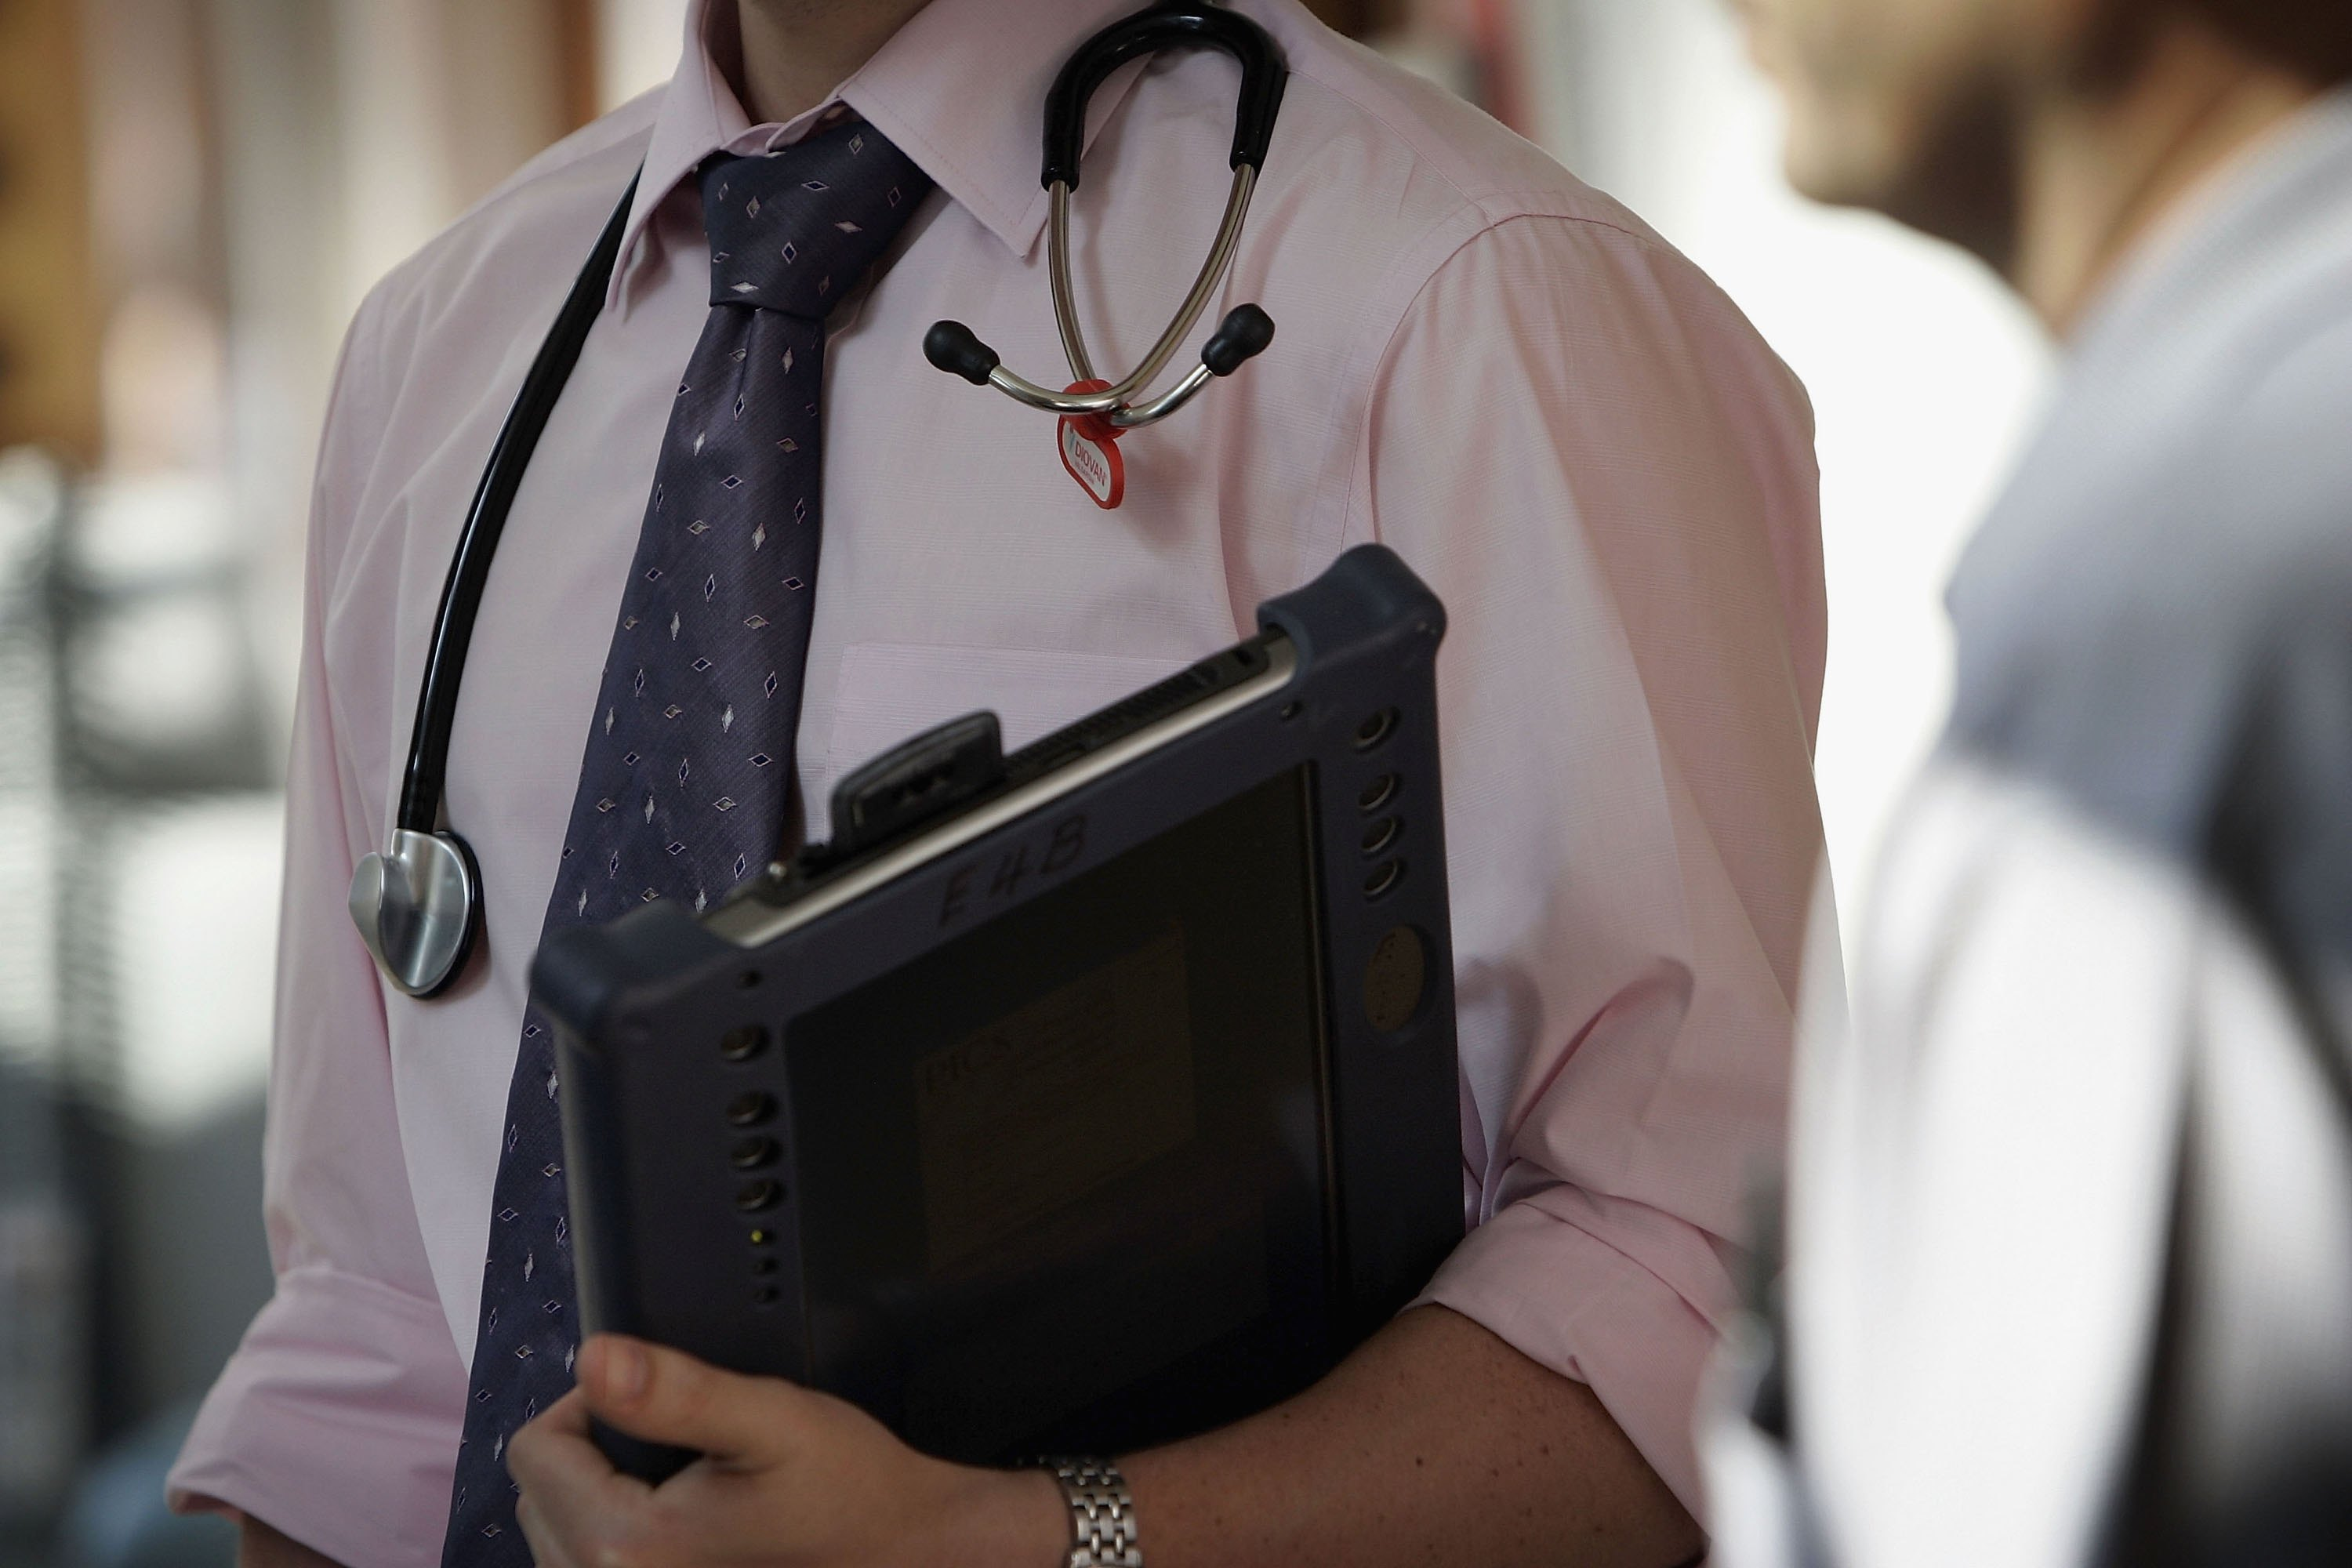 NHS Healthcare Organisation Looks To The Future